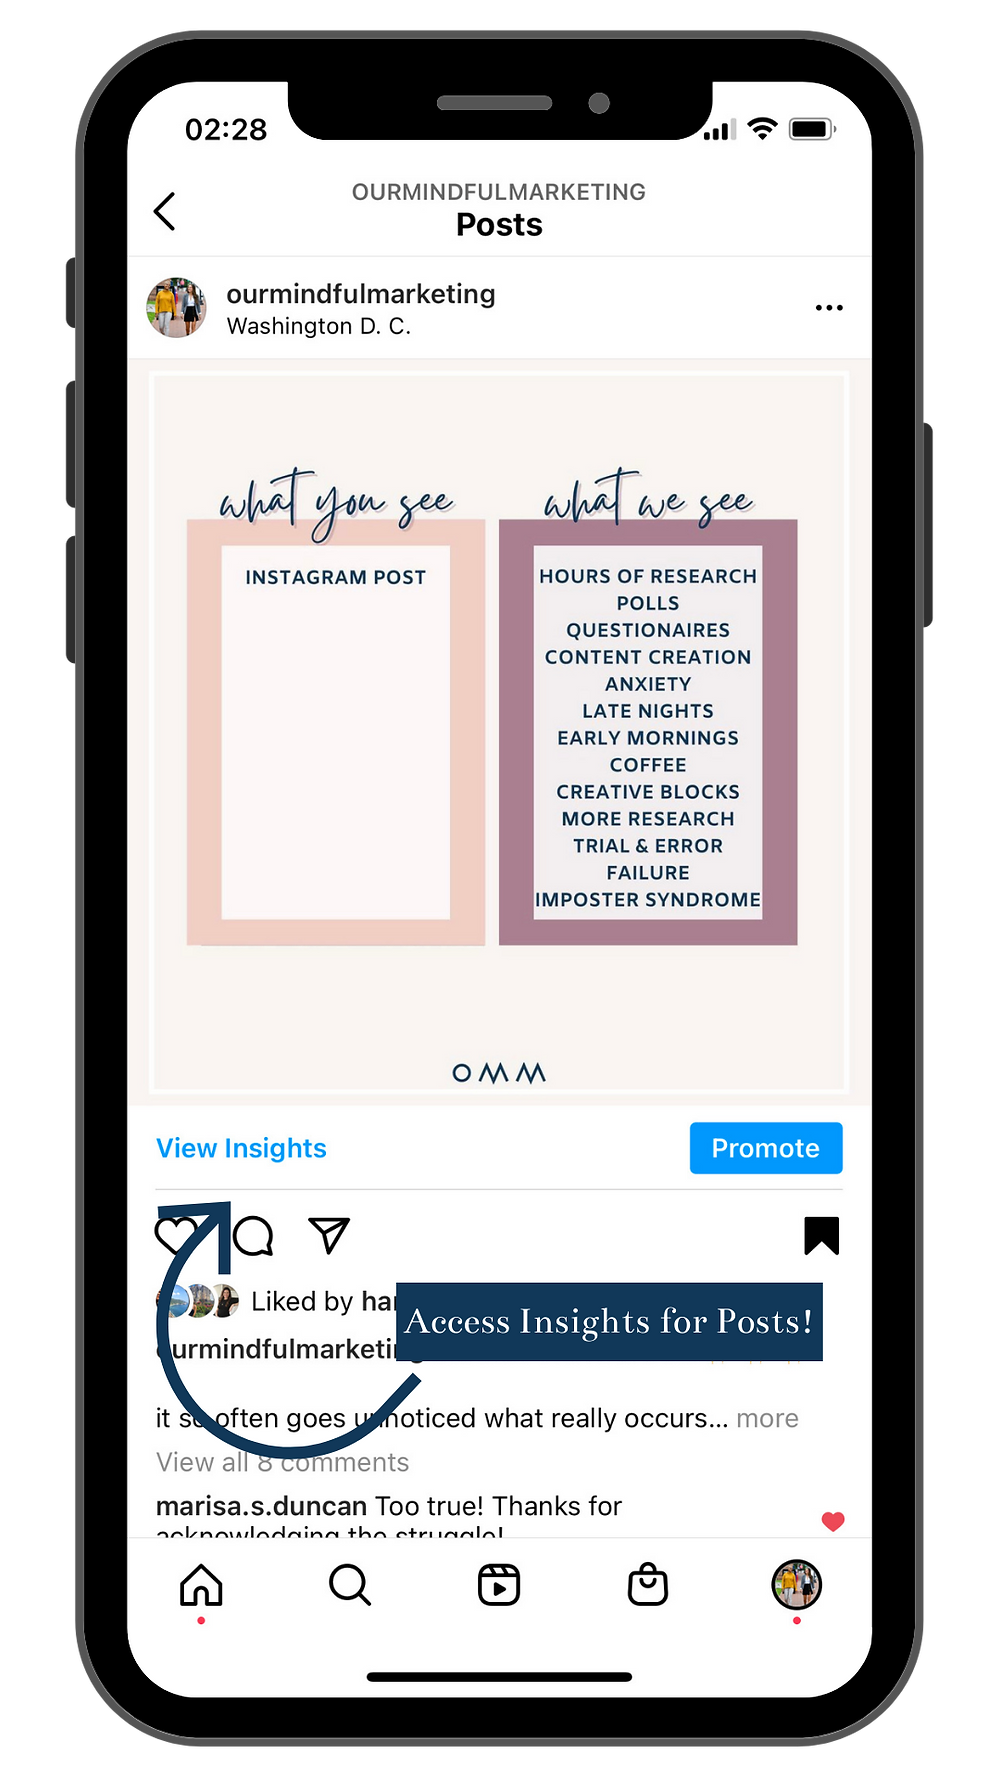 A screenshot image of Instagram insights. Shared by Our Mindful Marketing.